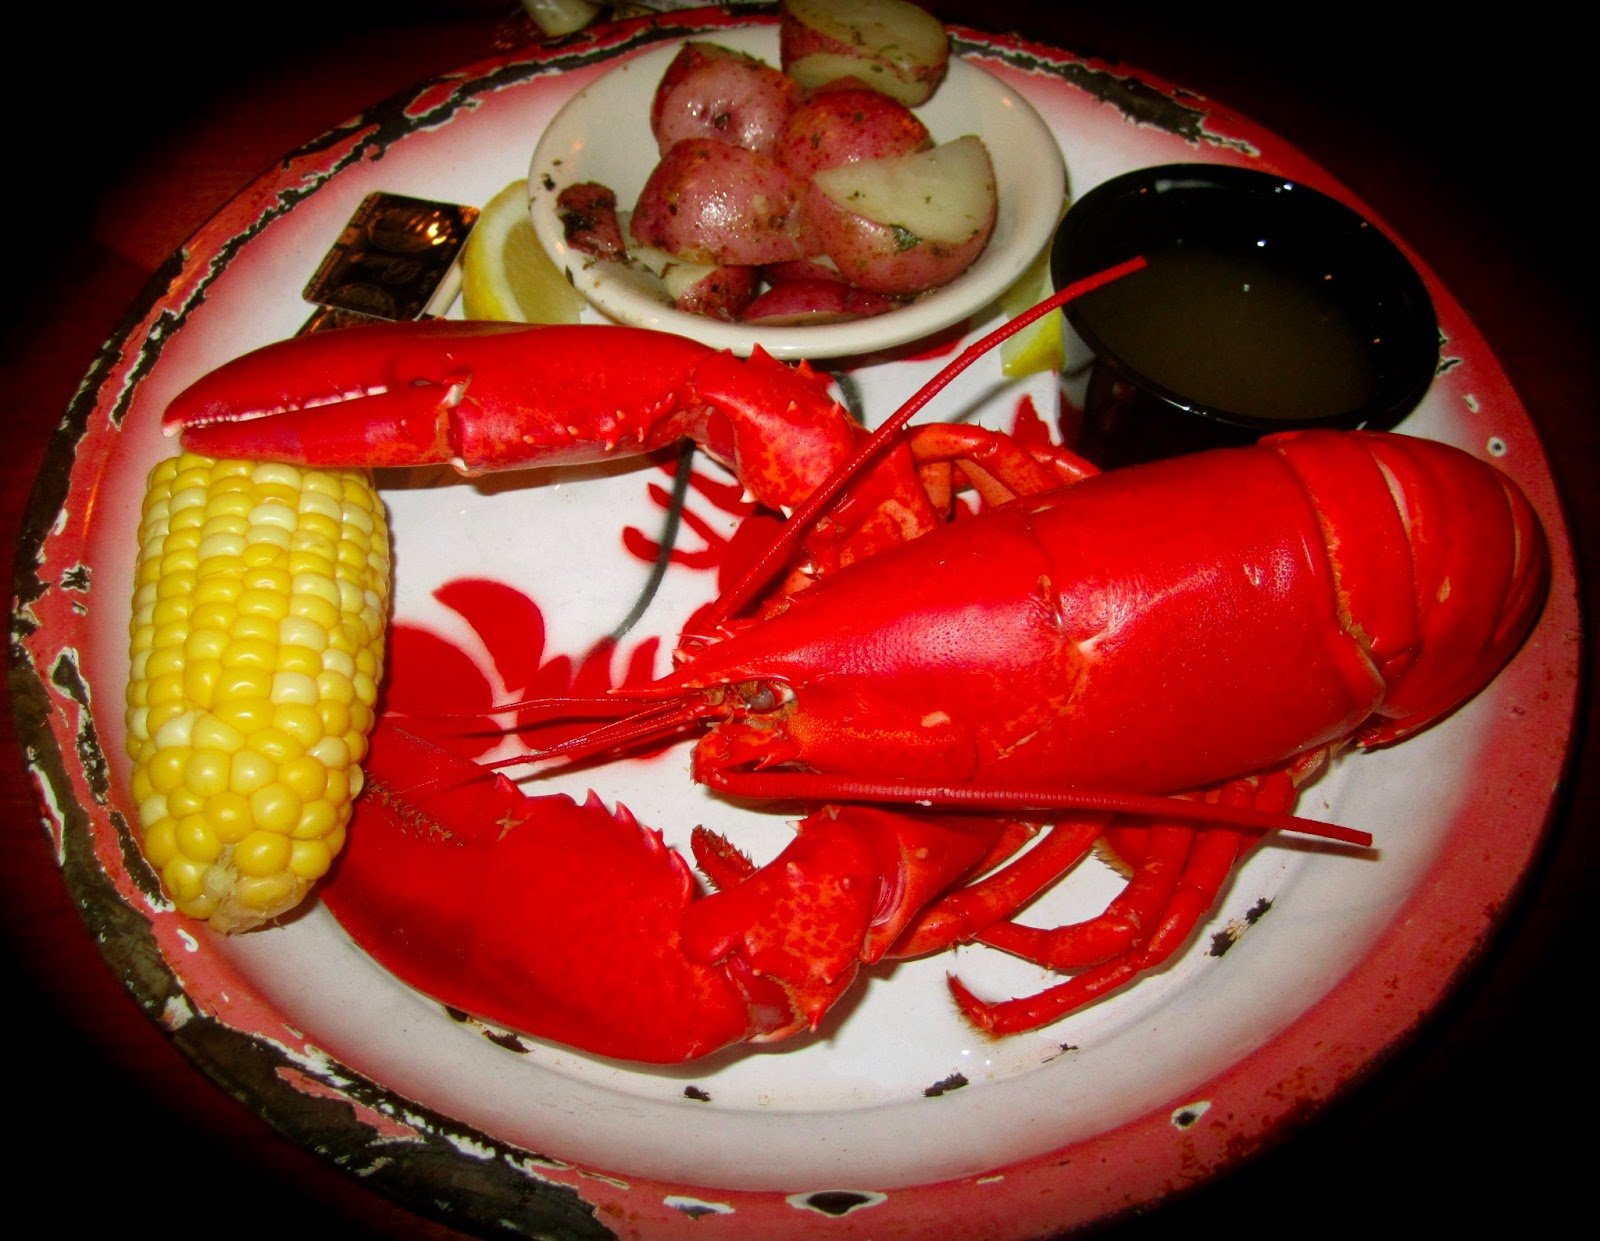 Tonight I have some mouthwatering photos for you featuring one of PEIs most famous foods and certainly one of my favorites lobster! Its